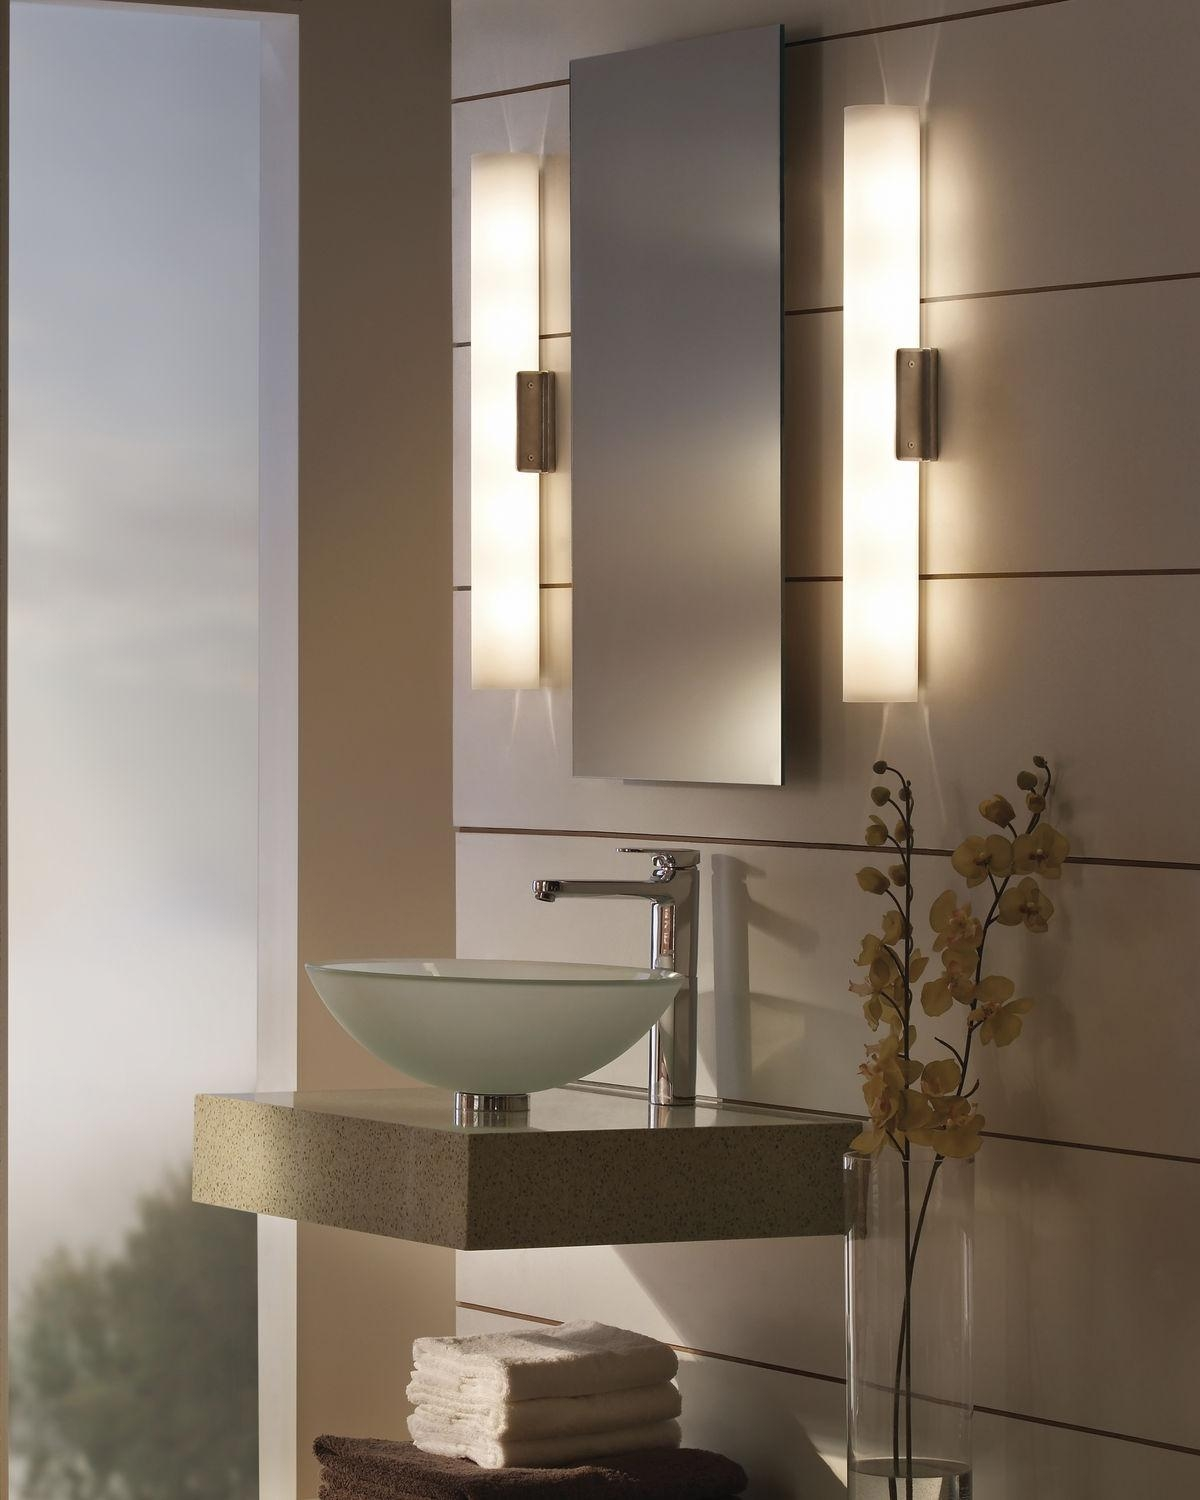 Bathroom Mirror Lights With Shelf • Bathroom Lighting With Regard To Bathroom Mirrors Lights (View 4 of 20)